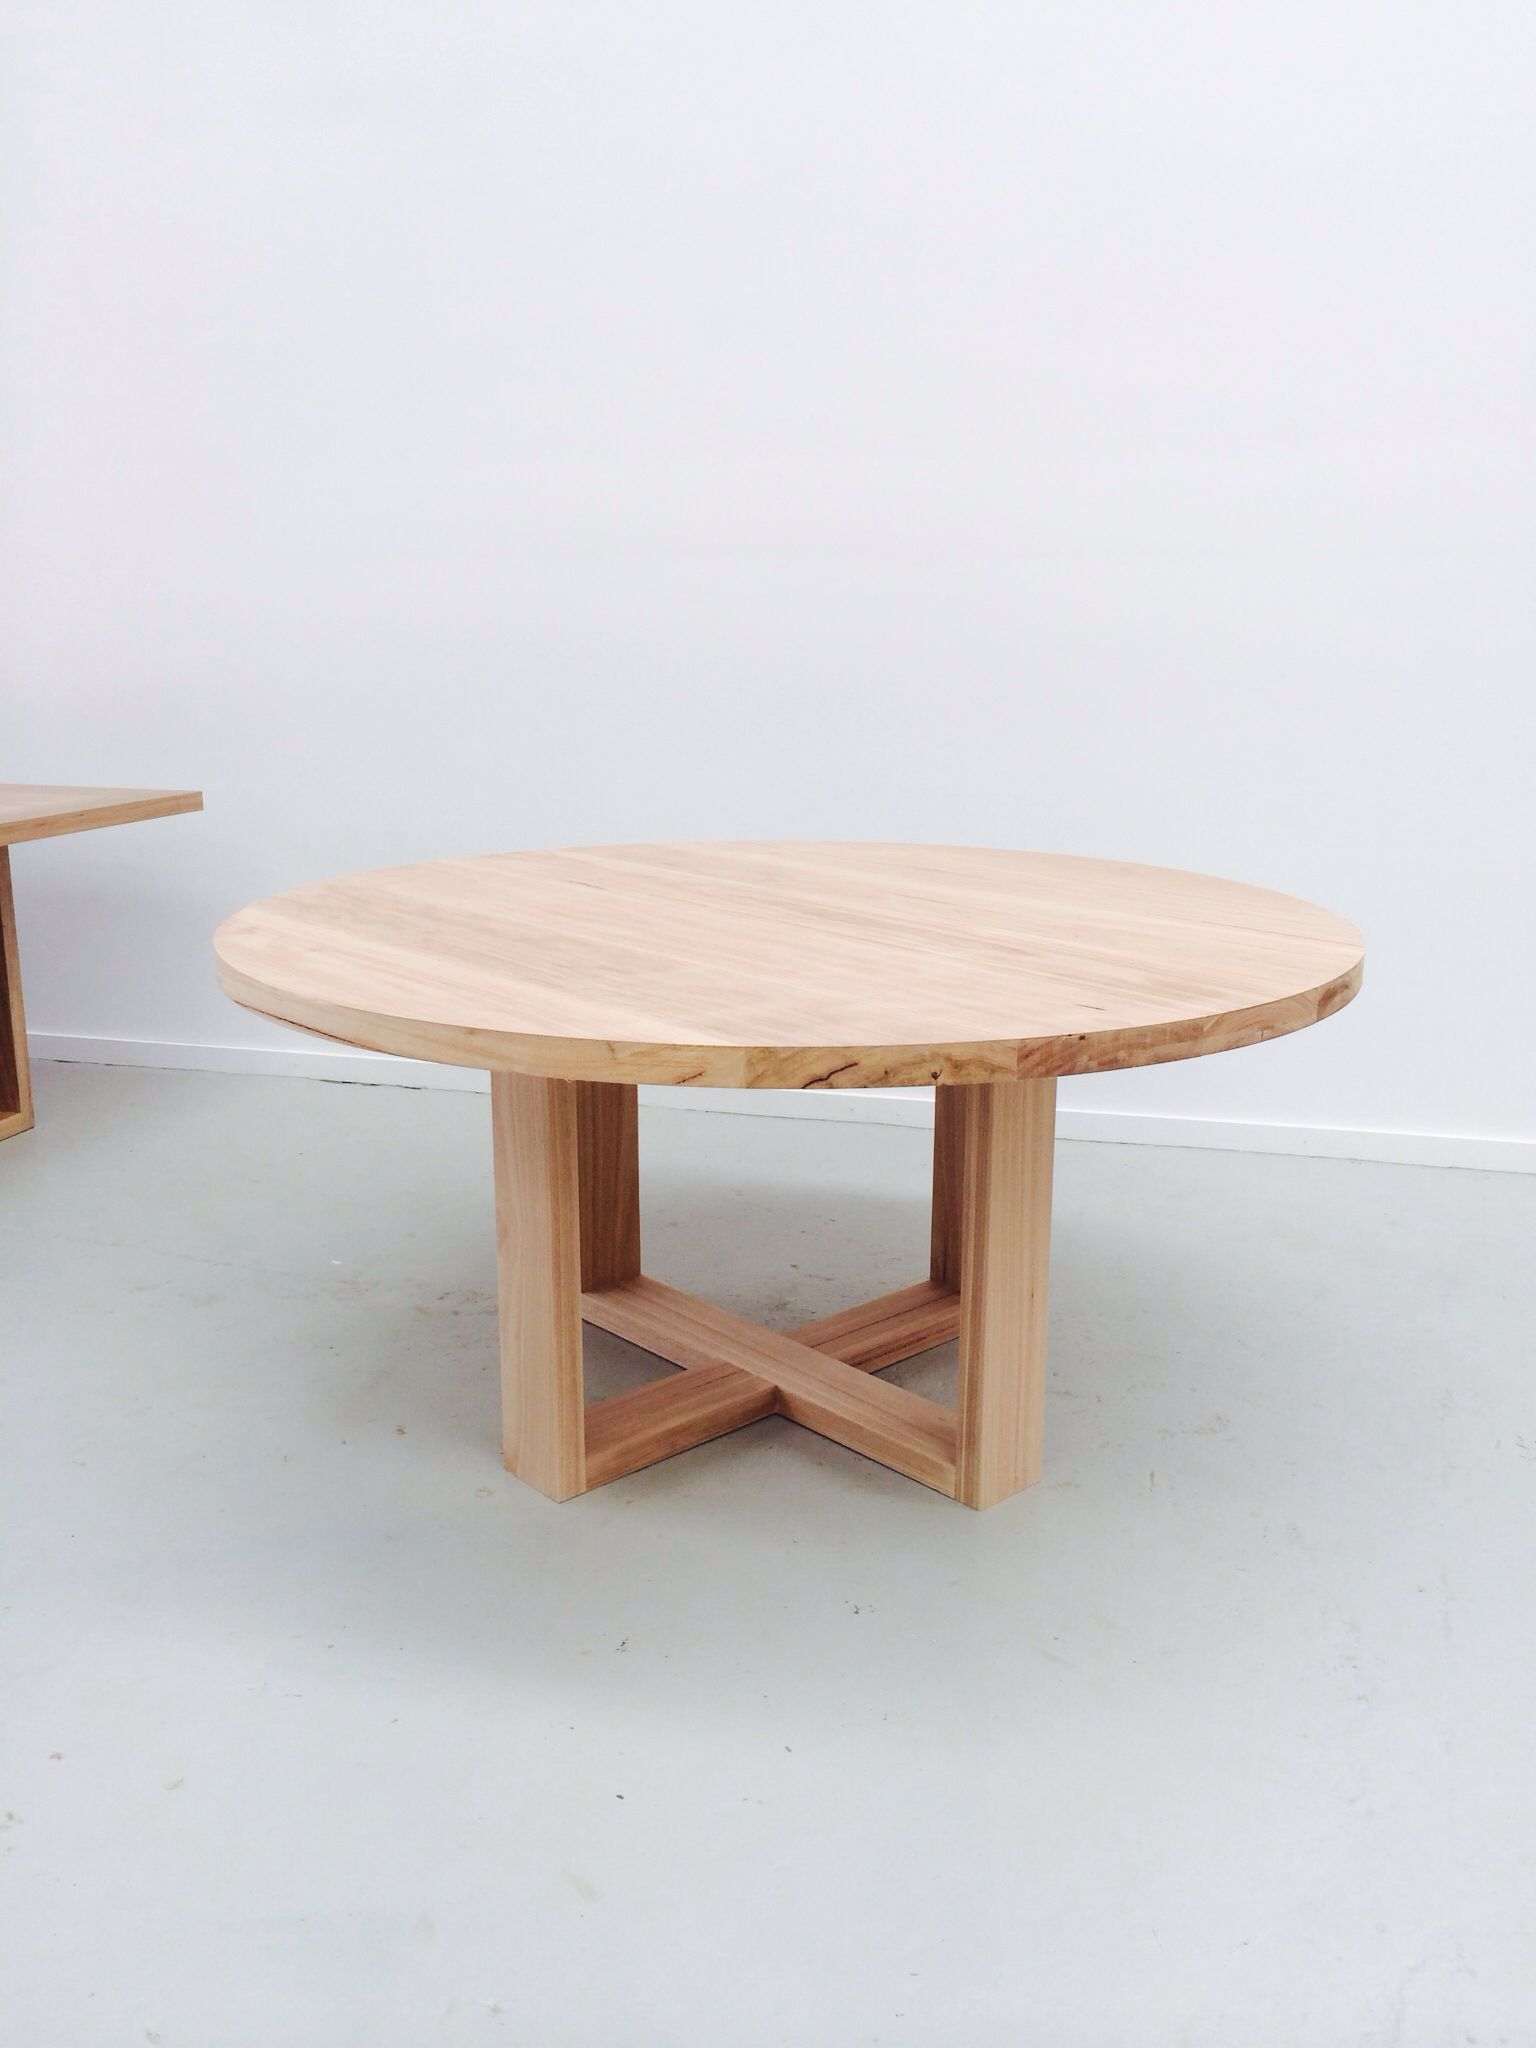 Round Timber Dining Table The Orbit Round Timber Dining Table From 1000mm Up To A Massive